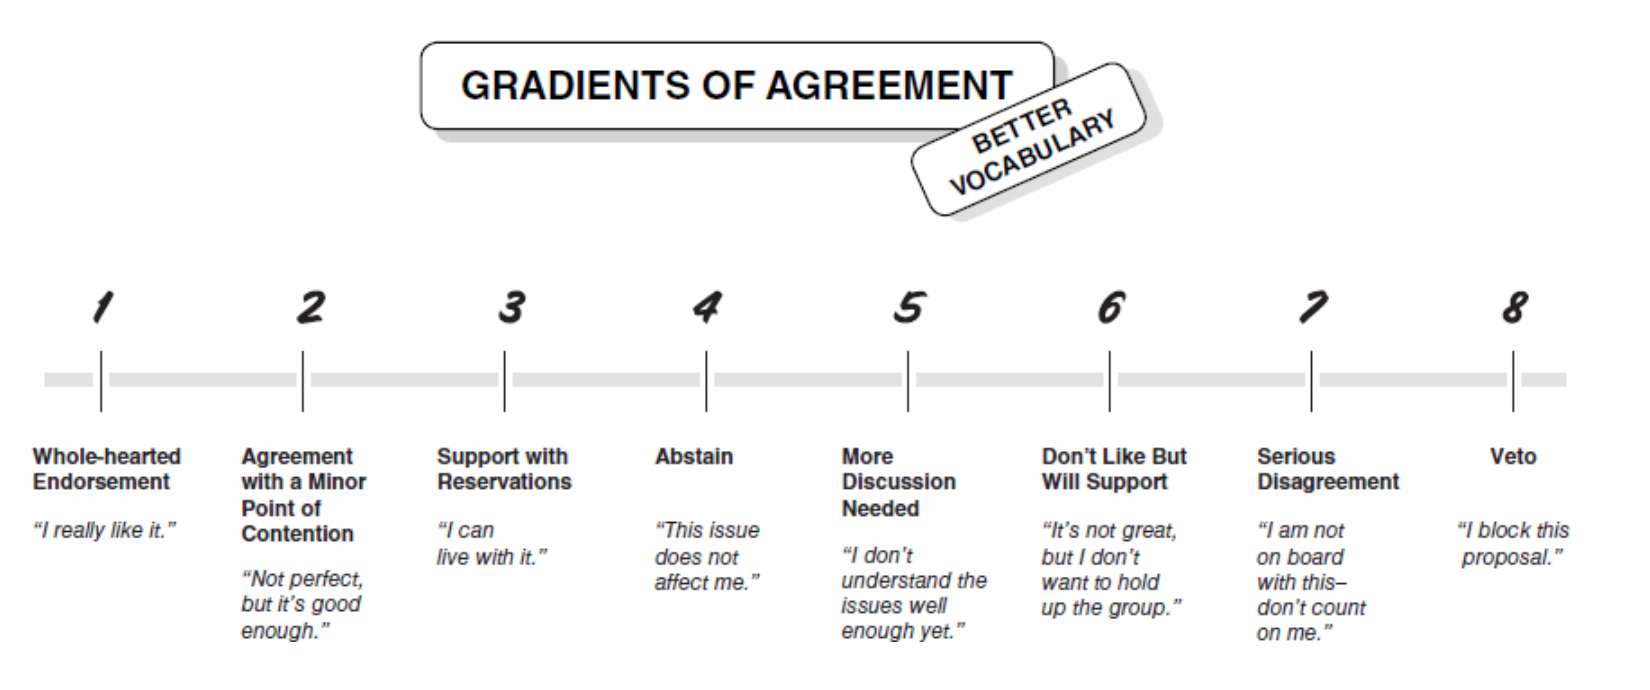 Gradients of Agreement